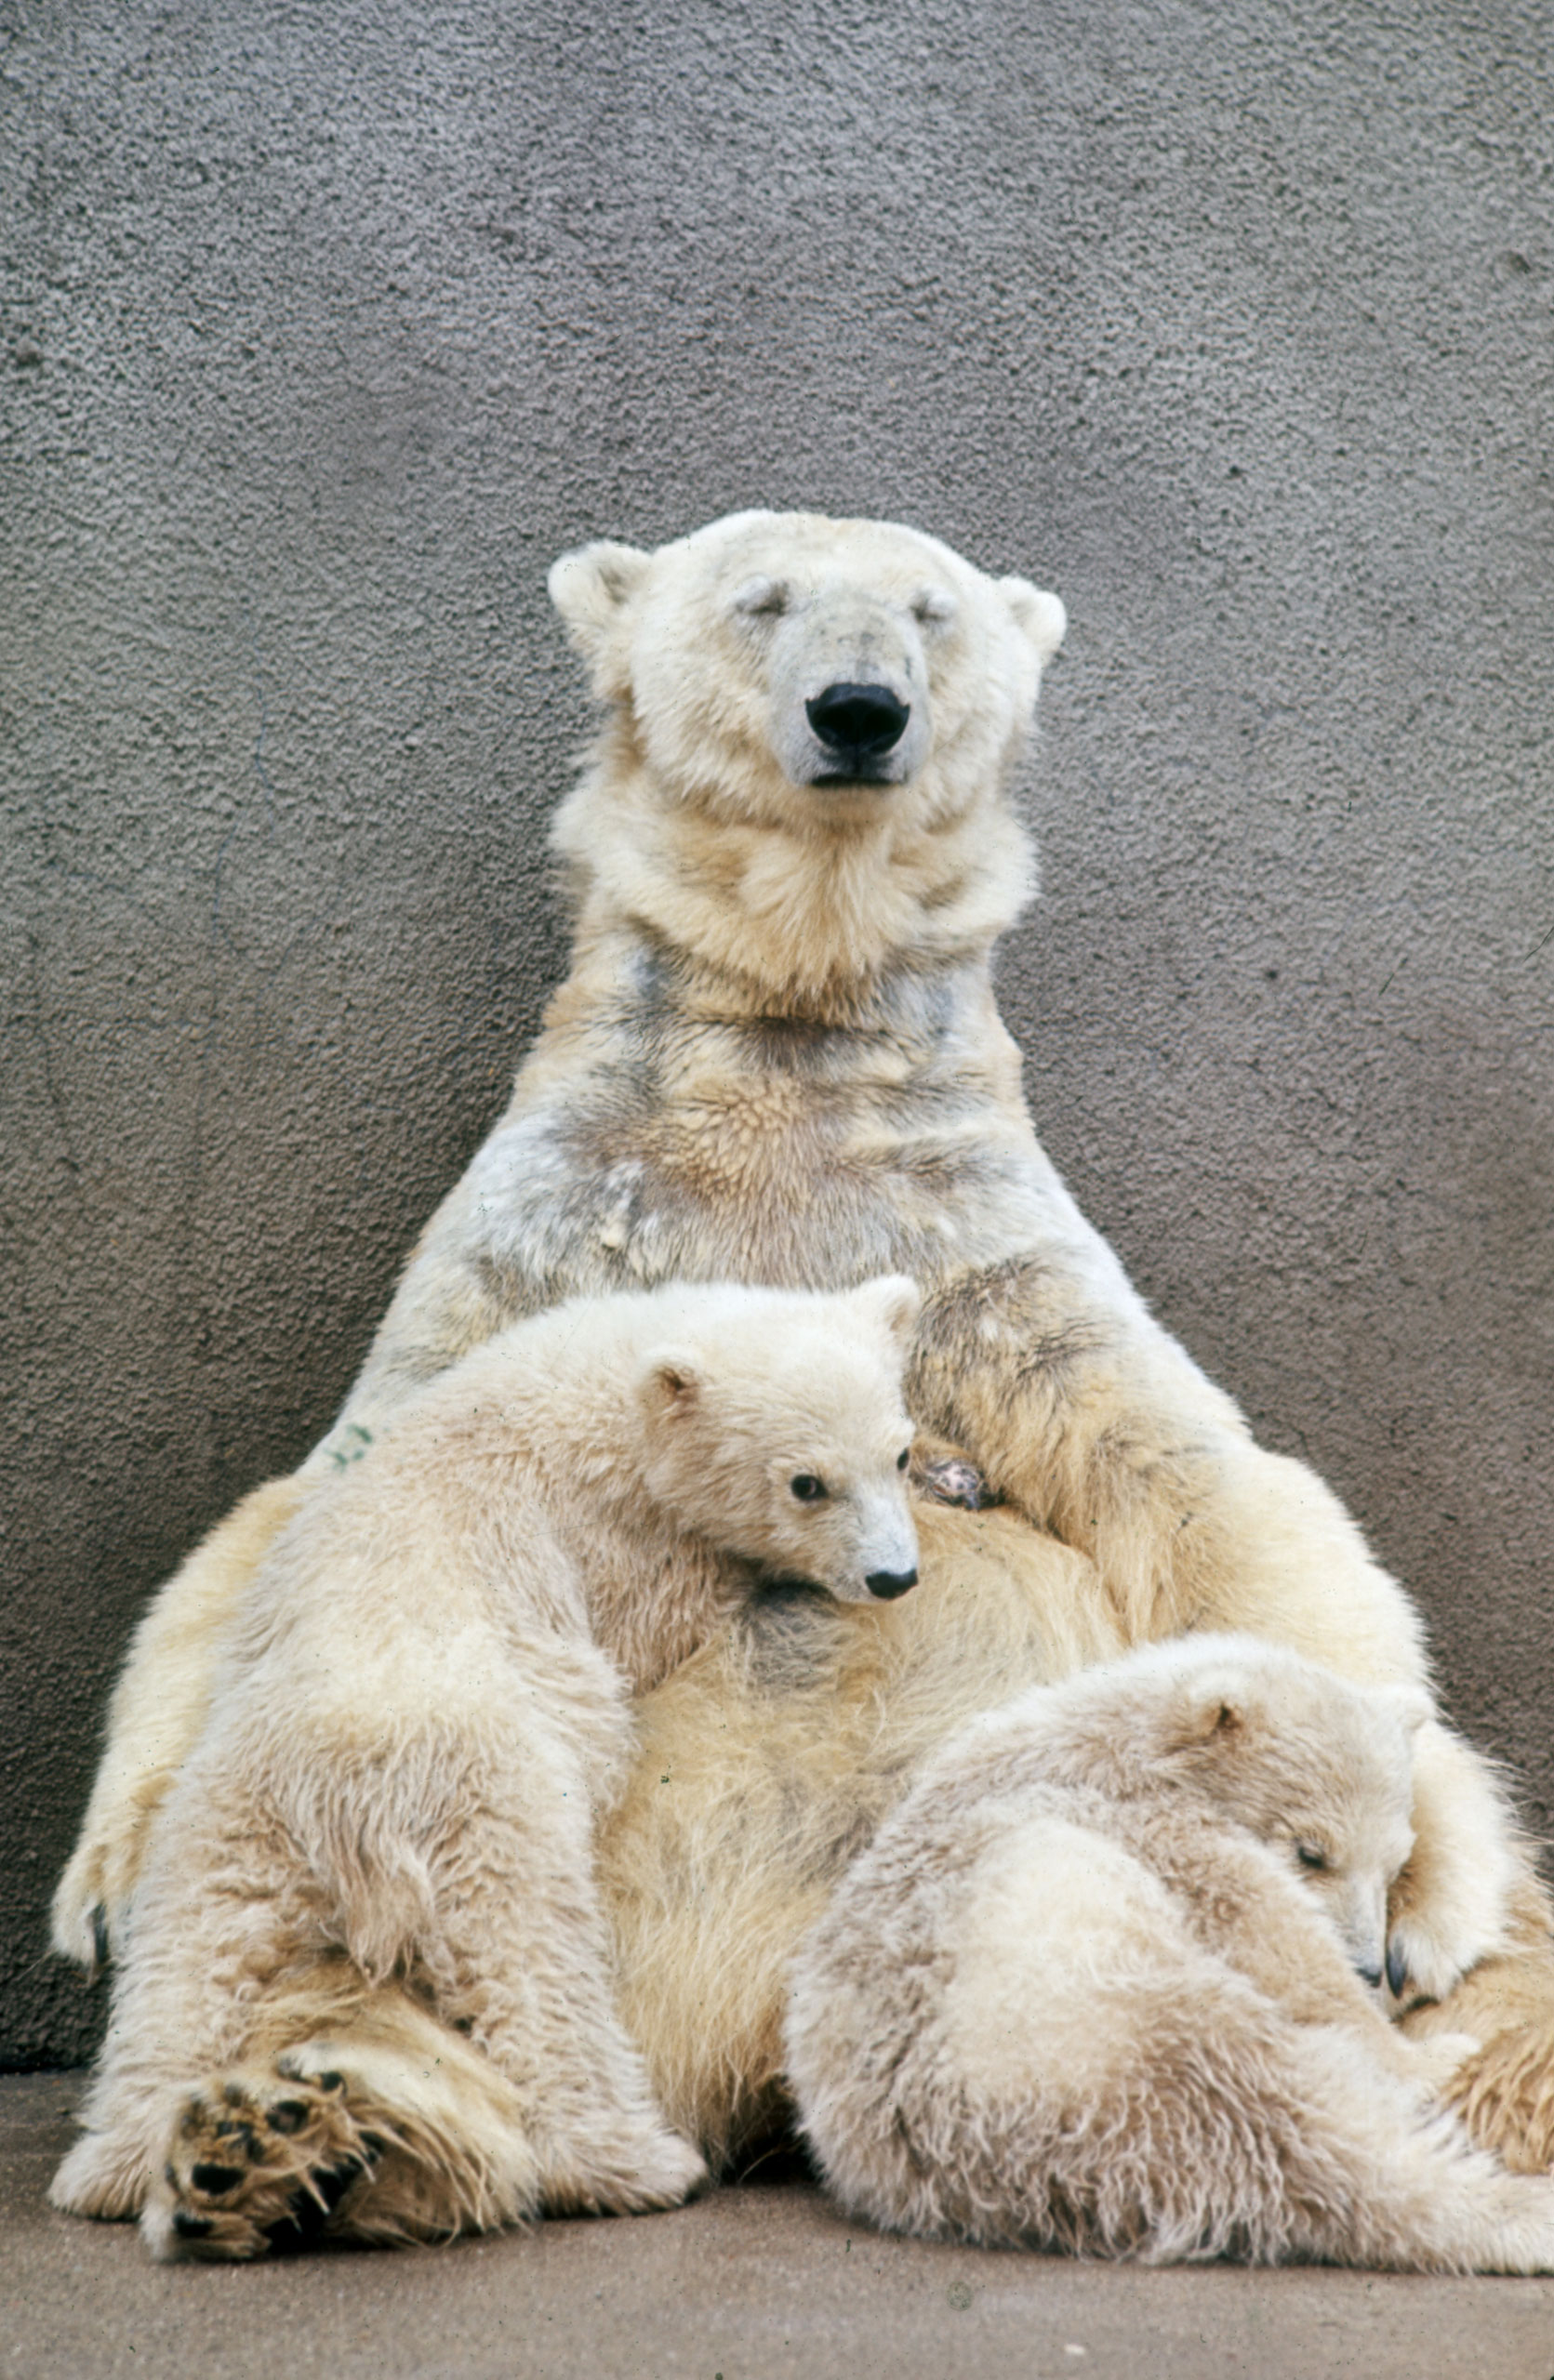 Caption from LIFE. Hilda, the 15-year-old grande dame of Detroit's bears, cradles her latest set of twins, her fourth pair. These 25-pound youngsters, both females, have been promised to the Sydney zoo in Australia.